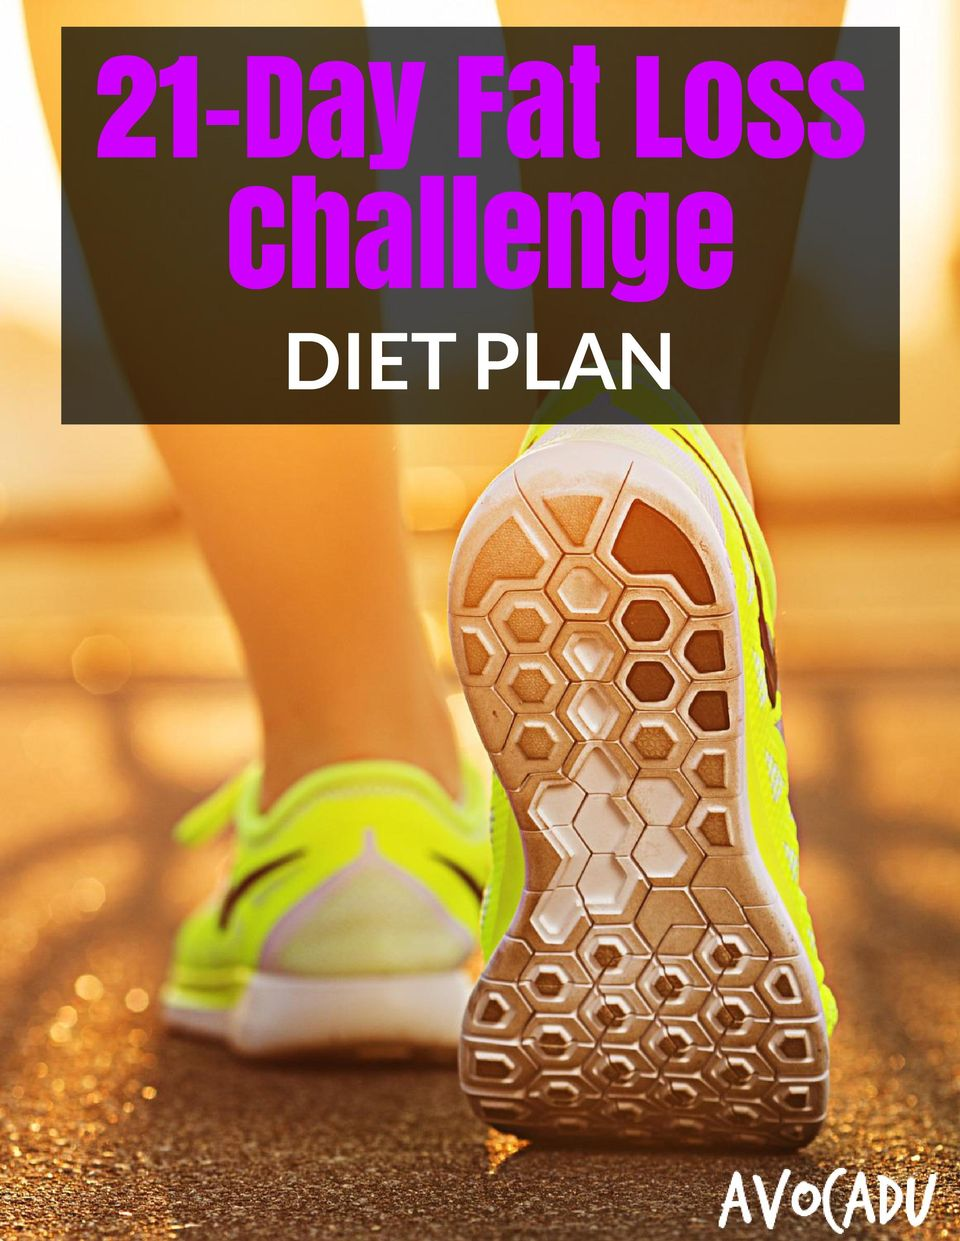 2 TABLE OF CONTENTS Introduction. 2 Approved Foods List. 3 Stage #1 Detox  and Carb Cleanse (Days 1-8).6 Day 1 24-Hour Fast... 8 Day 2 Veggies.